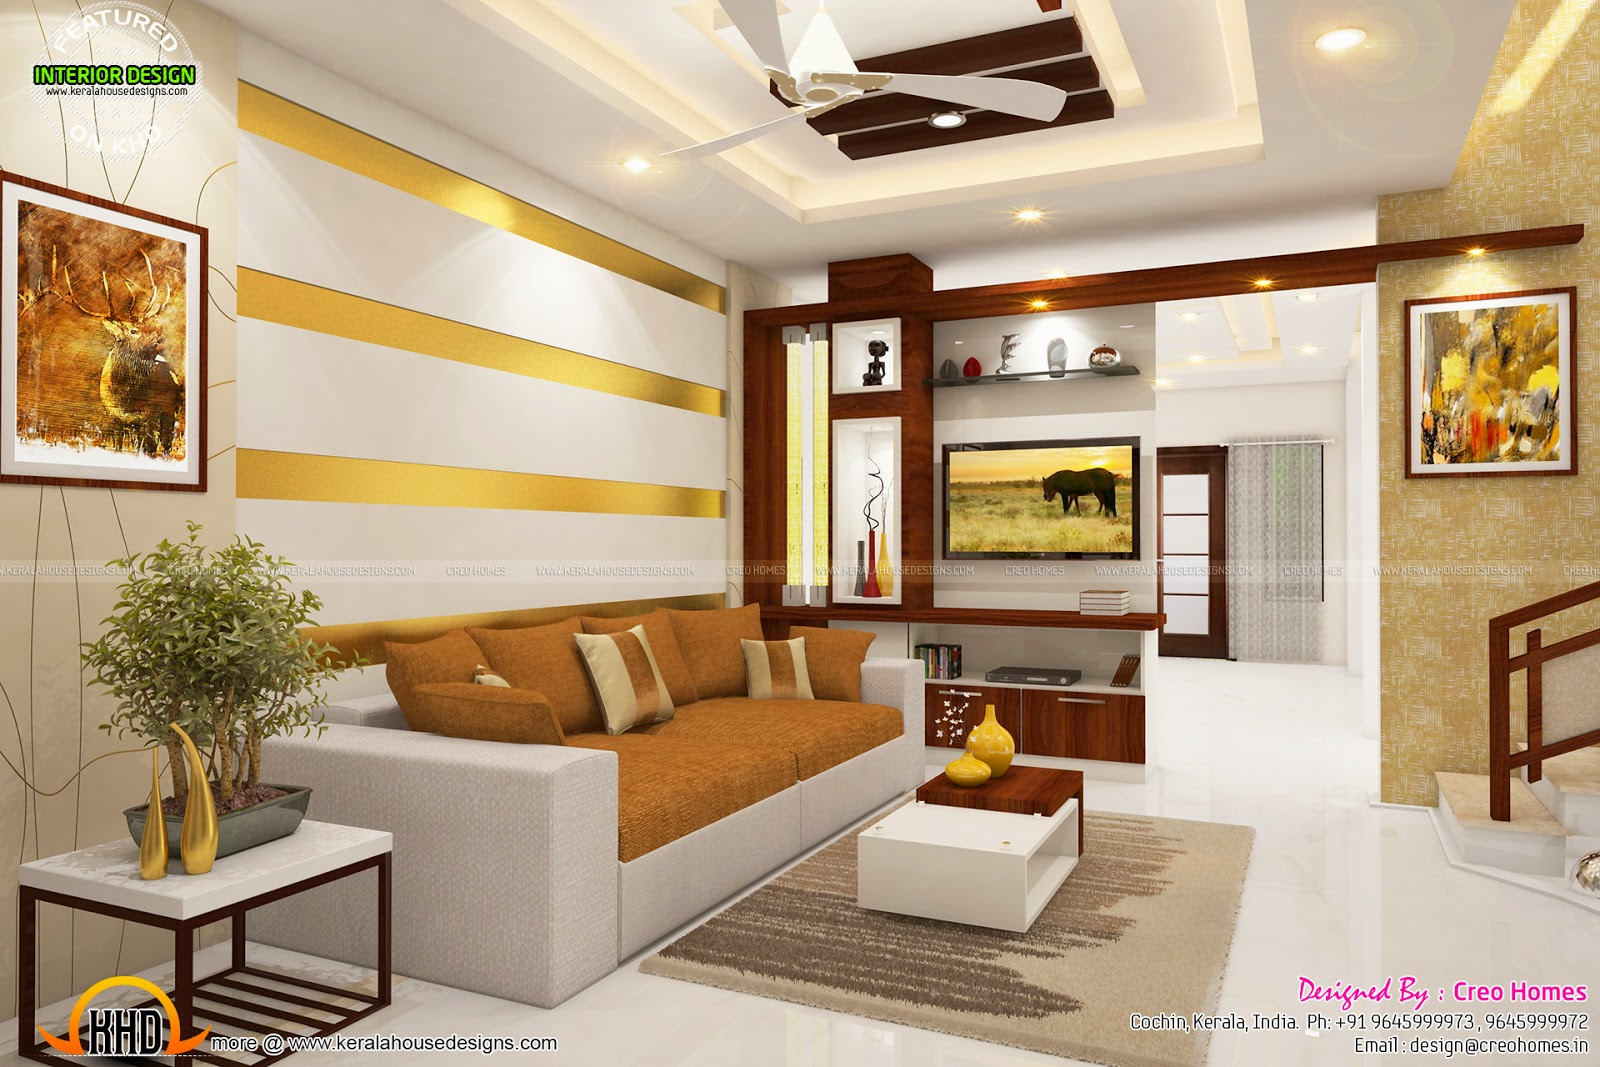 Total home interior solutions by creo homes kerala home for Kerala house interior painting photos